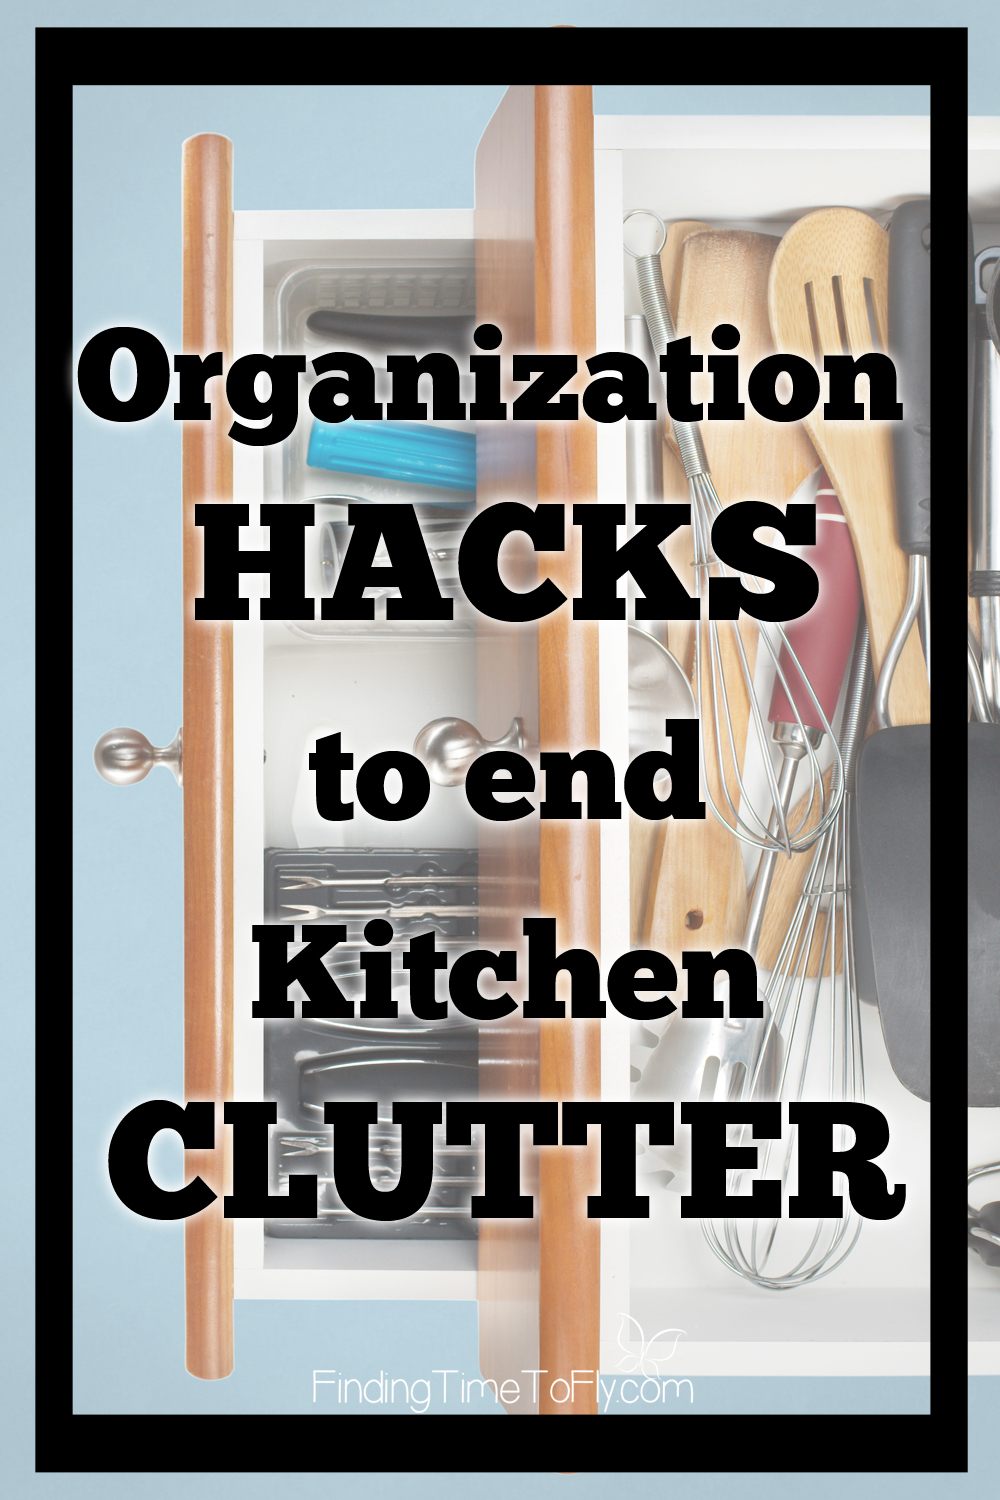 Kitchen organization hacks to end kitchen clutter for Kitchen organization hacks